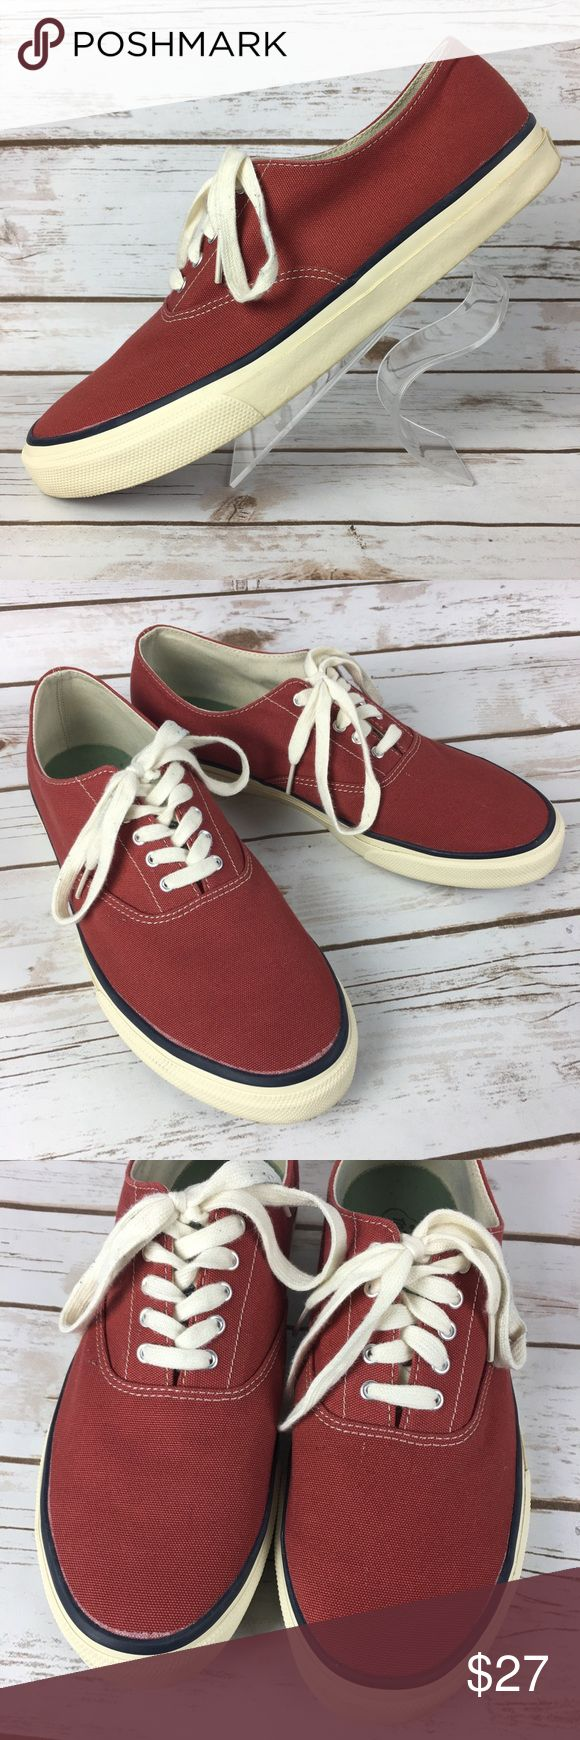 Sperry Top Sider Canvas Shoes Men's 10.5 M EUC These shoes are in very good, lightly worn condition. Minor scuffs, scratches and marks from wear. Please see pics for more details (: Sperry Top-Sider Shoes Sneakers